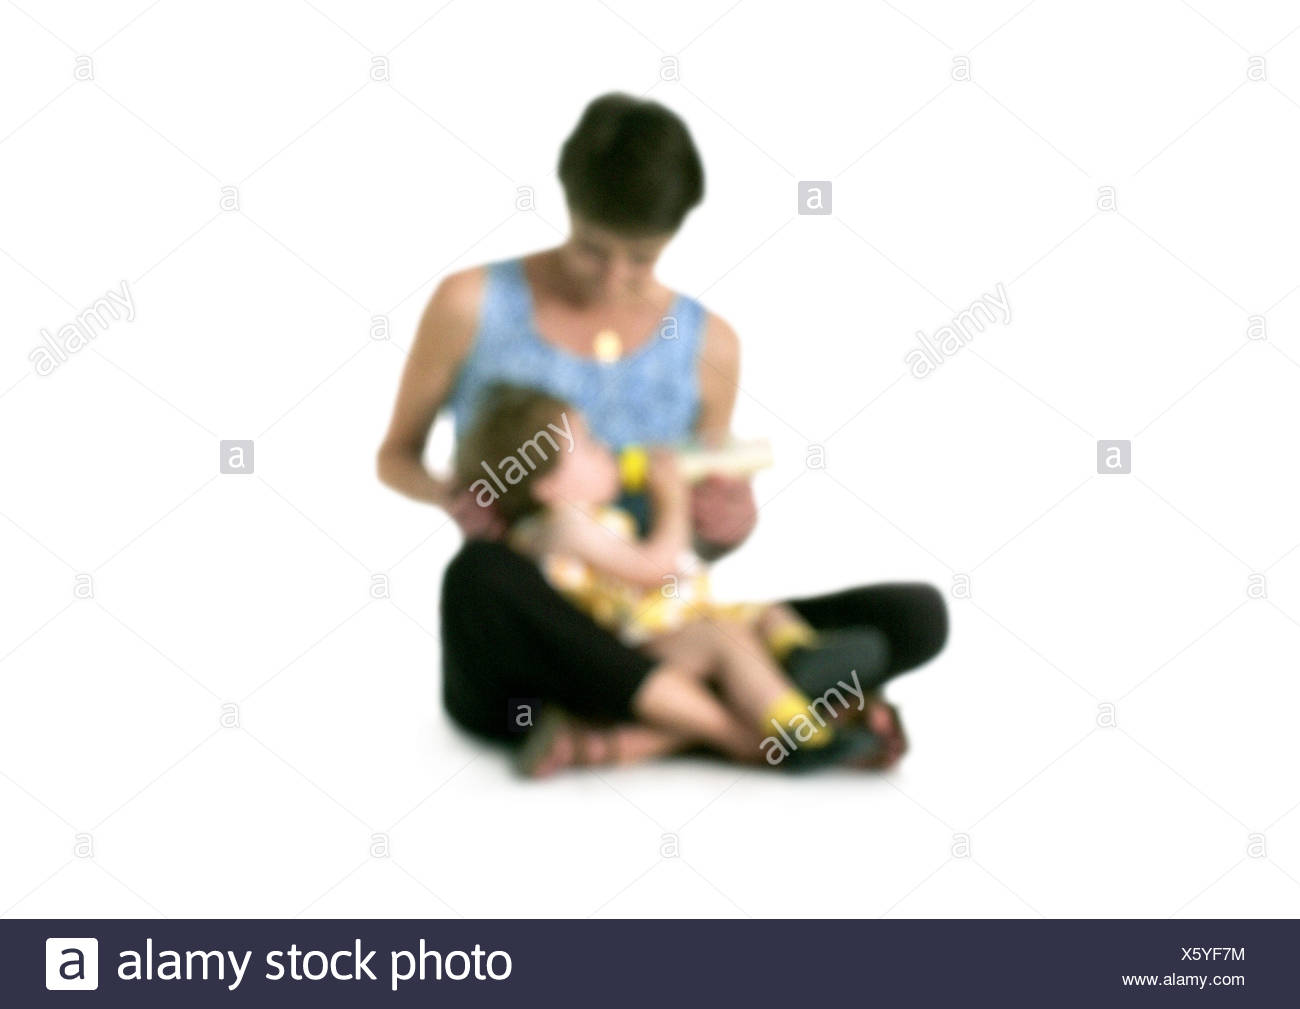 Silhouette of woman feeding bottle to girl on lap, on white background, defocused - Stock Image